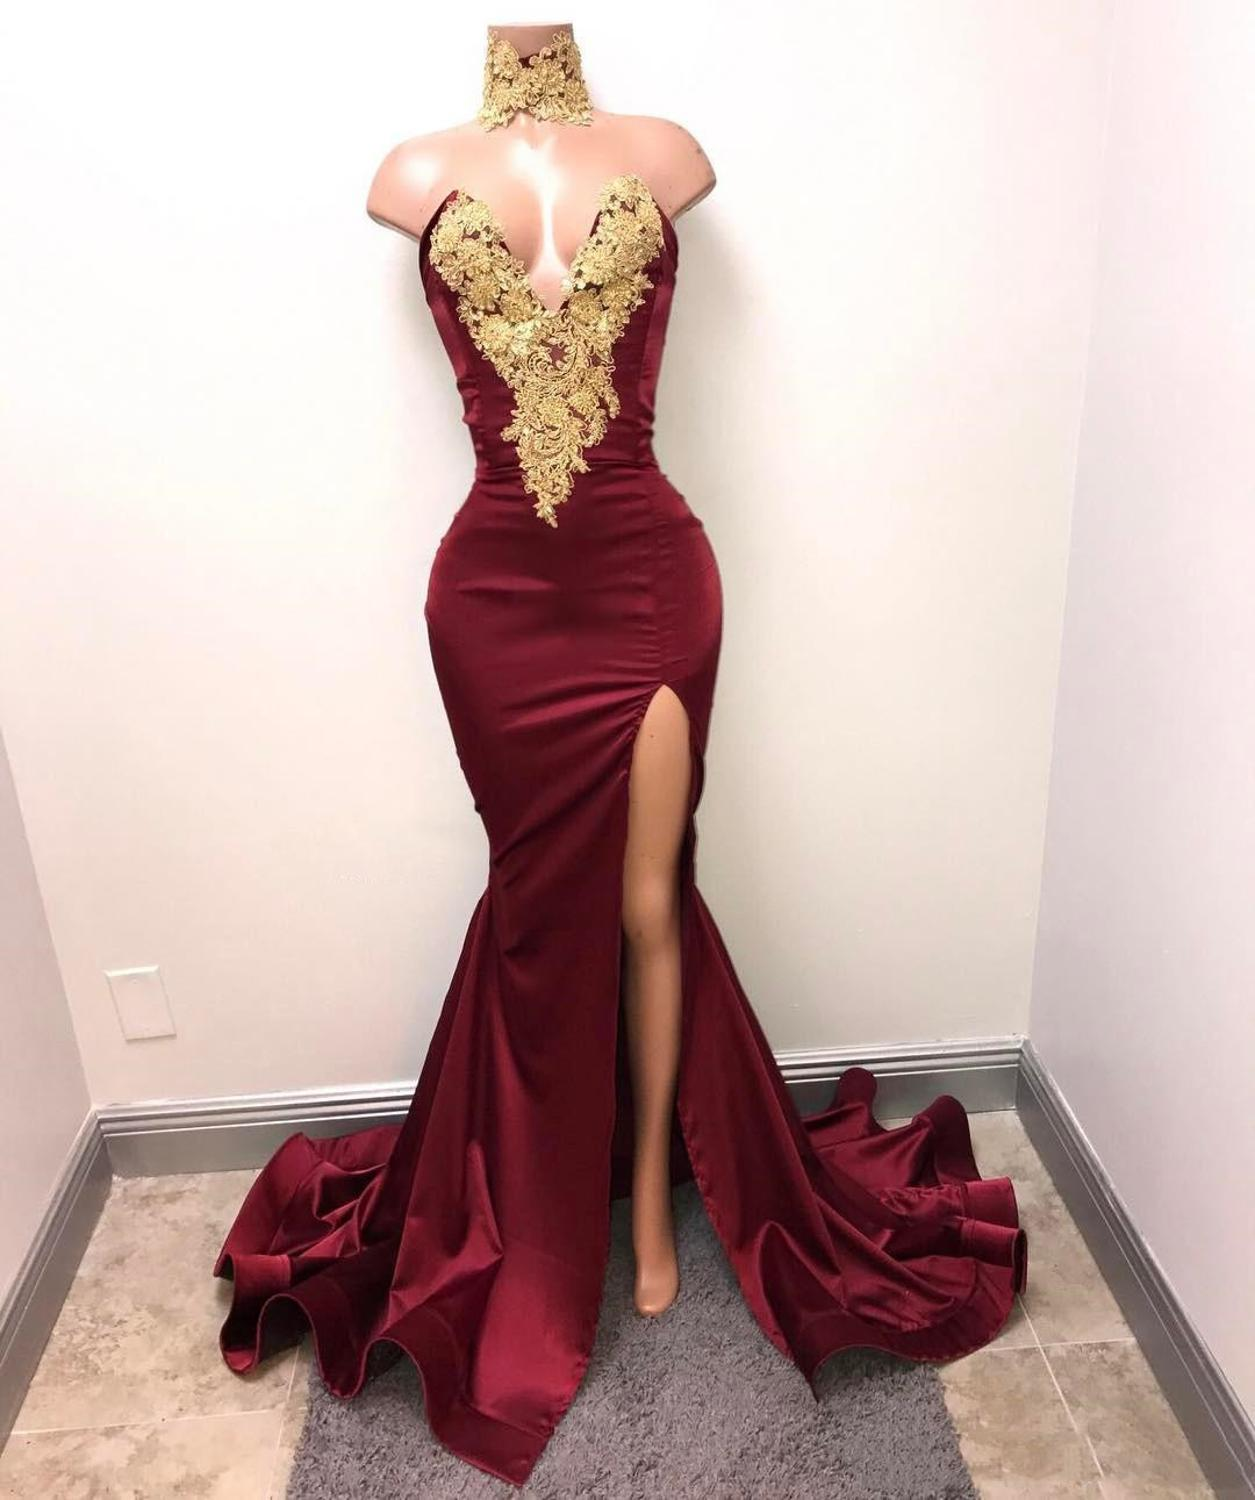 Hot Sale Burgundy Mermaid Prom Dress Lace Appliques Sexy Slit Deep V-Neck Evening Gowns Formal Dresses 2020 prom dresses